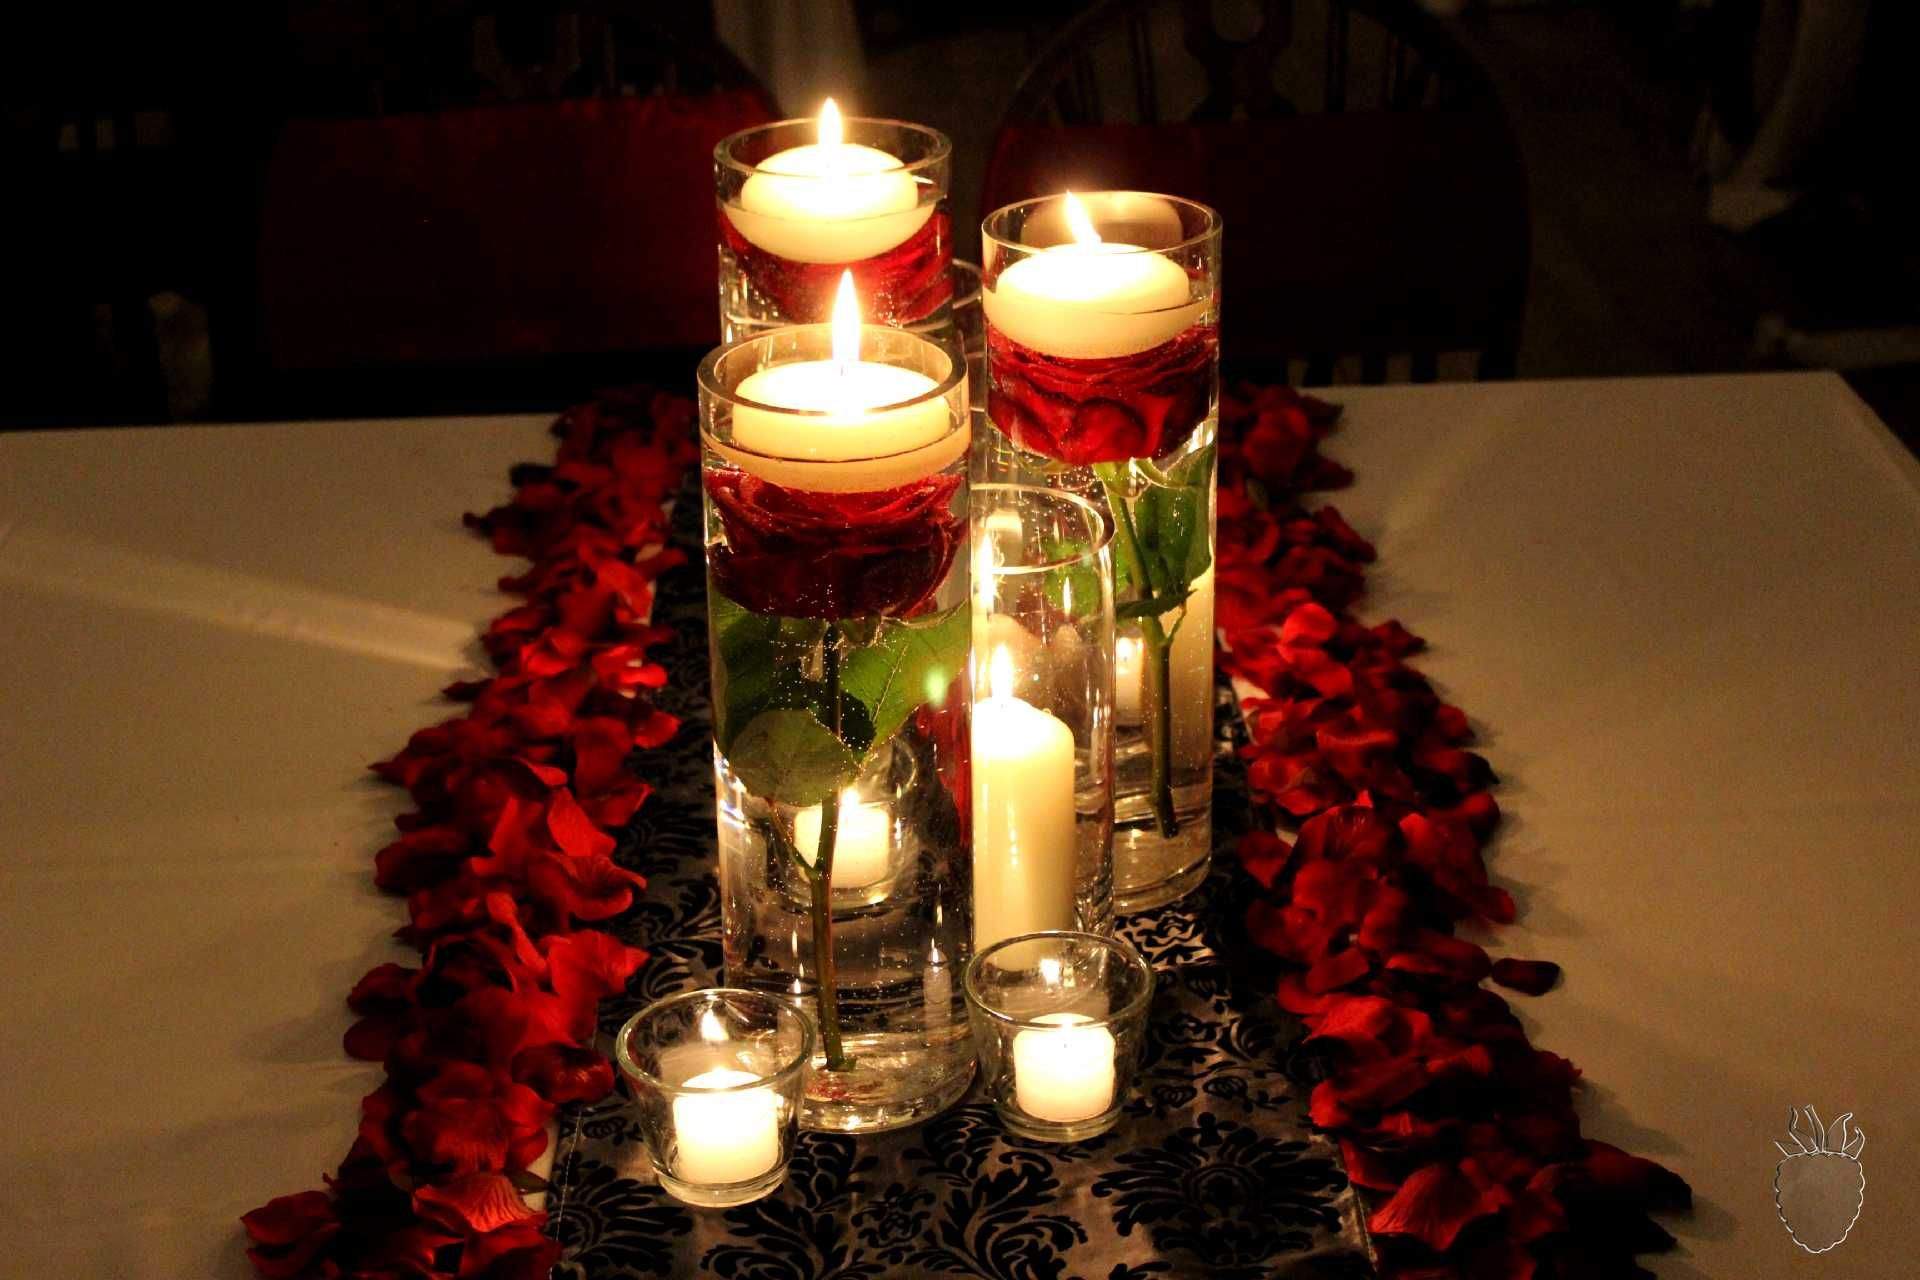 Roses In Cylinder Vases With Candles And Rose Petals Rehearsal Dinner Decorations Floating Candle Centerpieces Gothic Candles